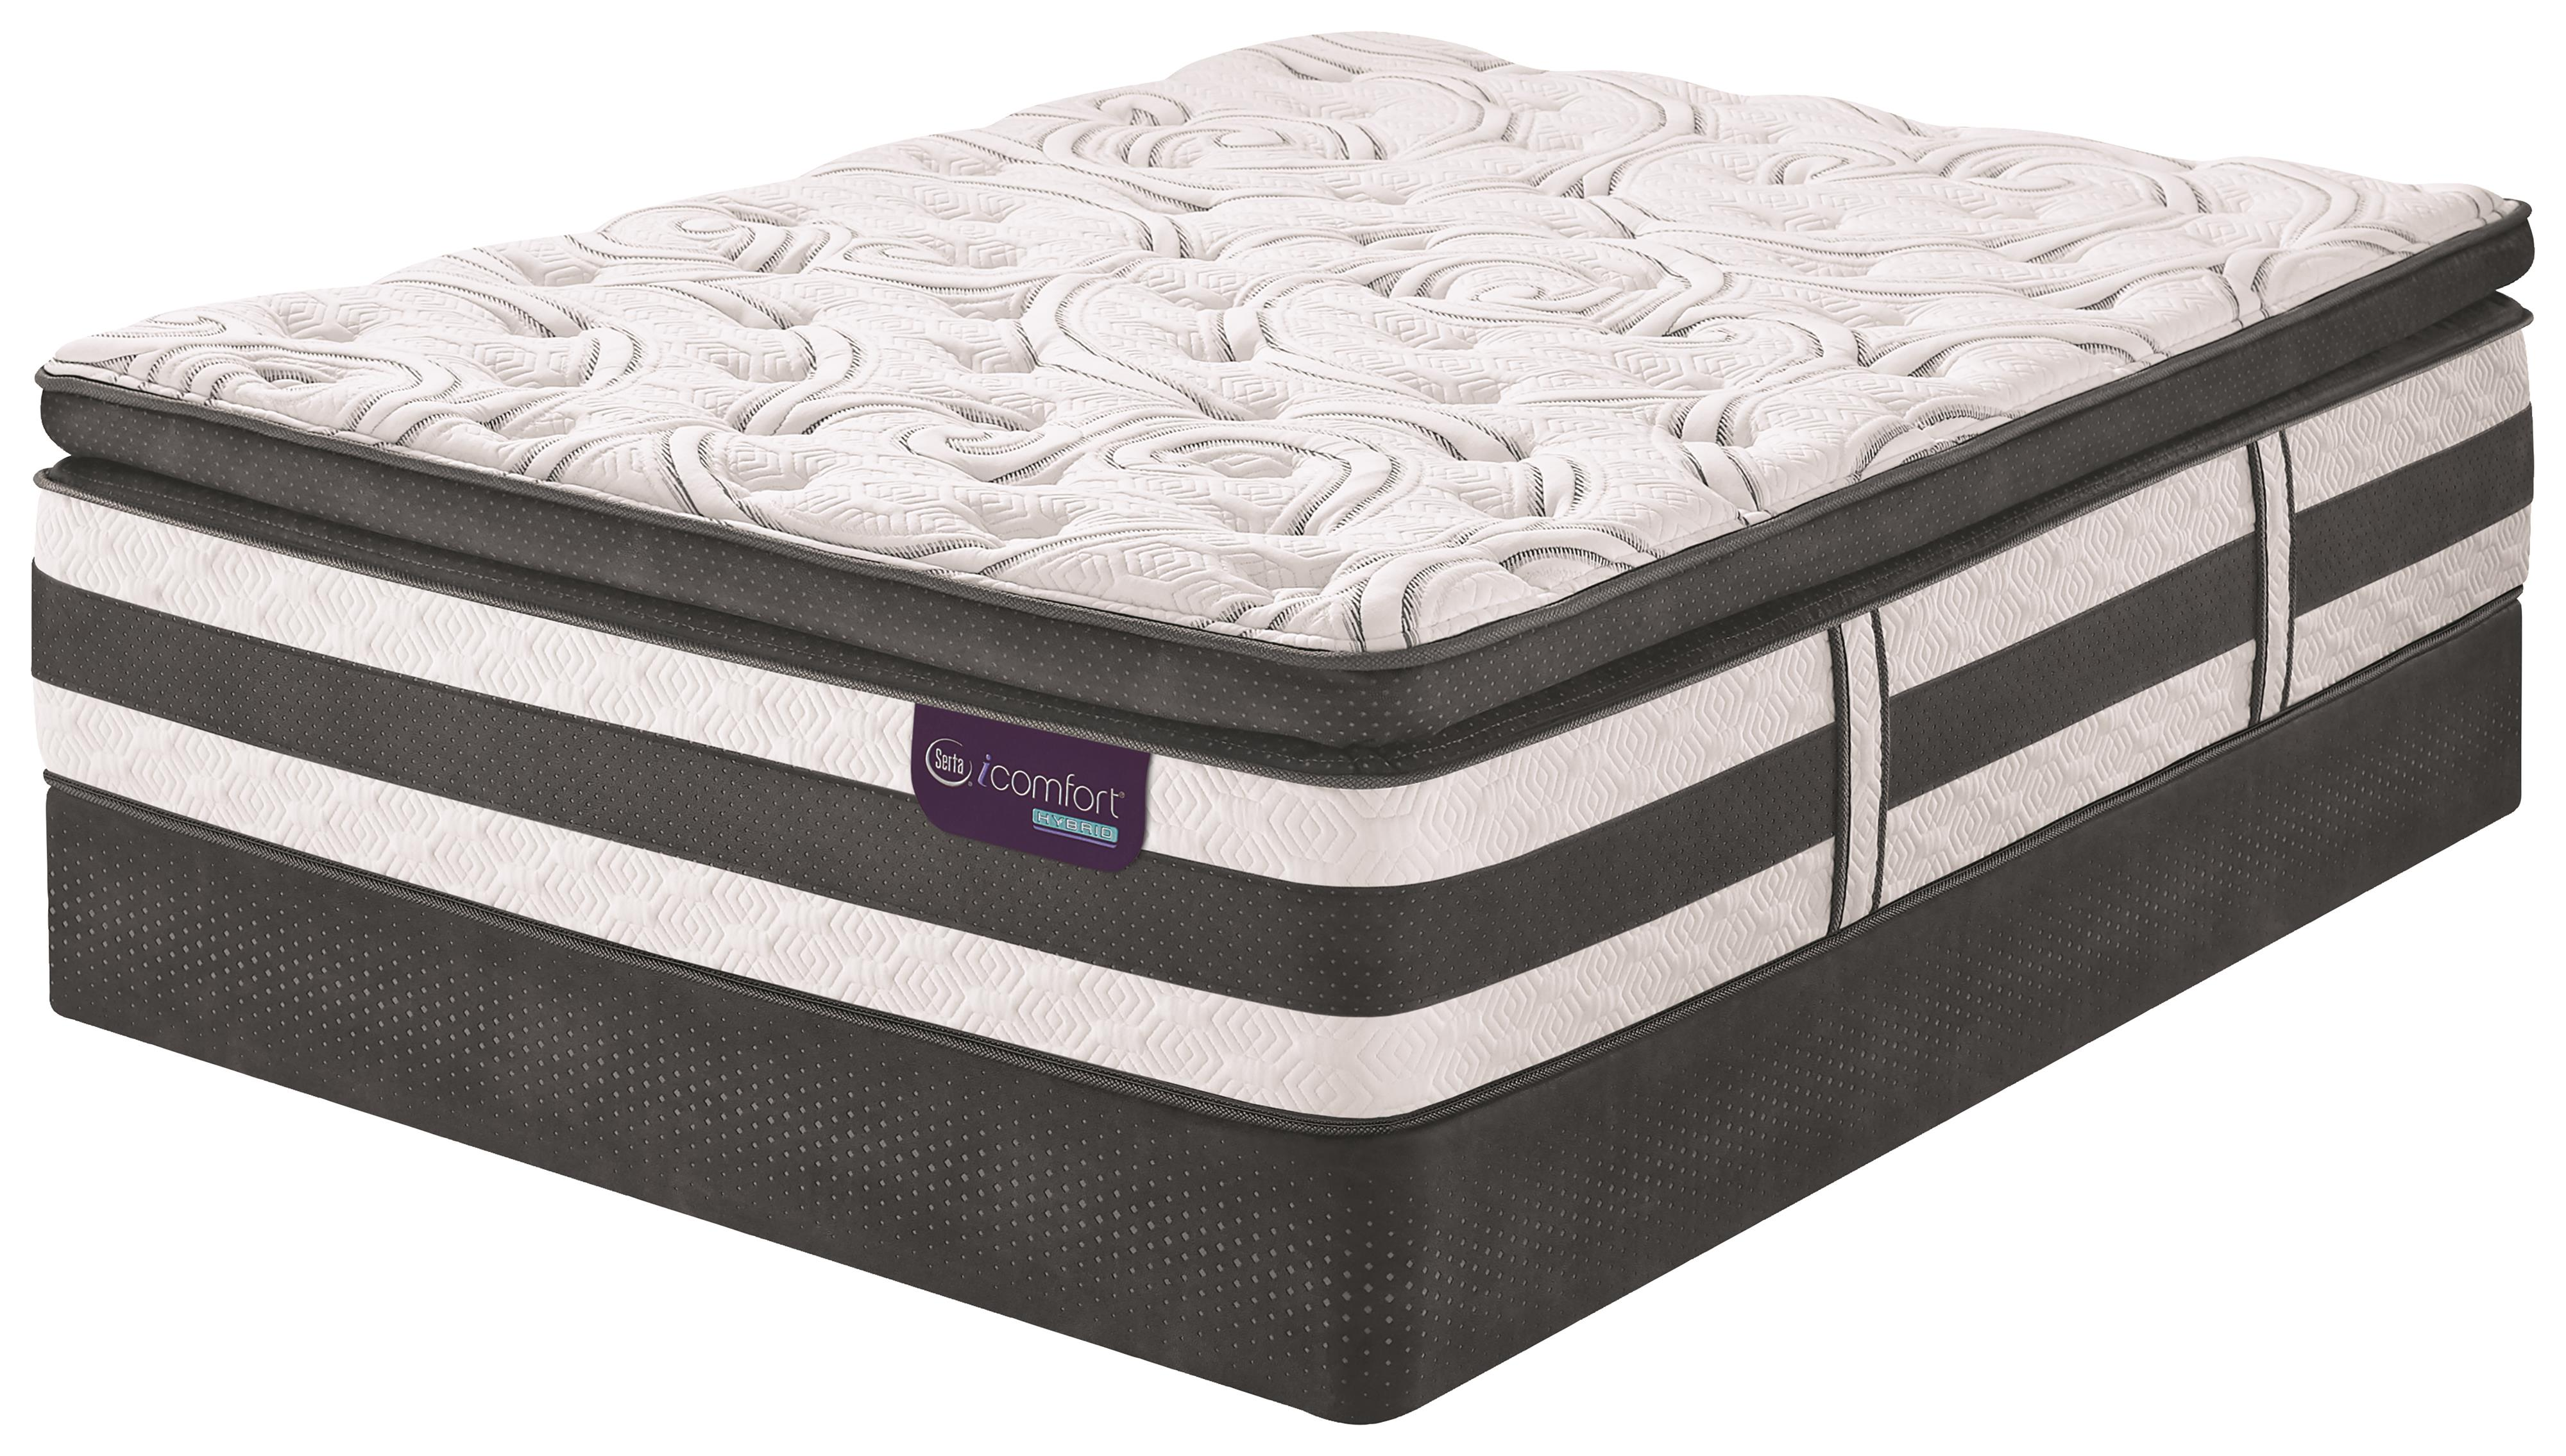 Serta iComfort Hybrid Advisor Cal King PT Hybrid Quilted Mattress Set, LP - Item Number: AdvisorPT-CK+2xLPStabL-Base-SPCK